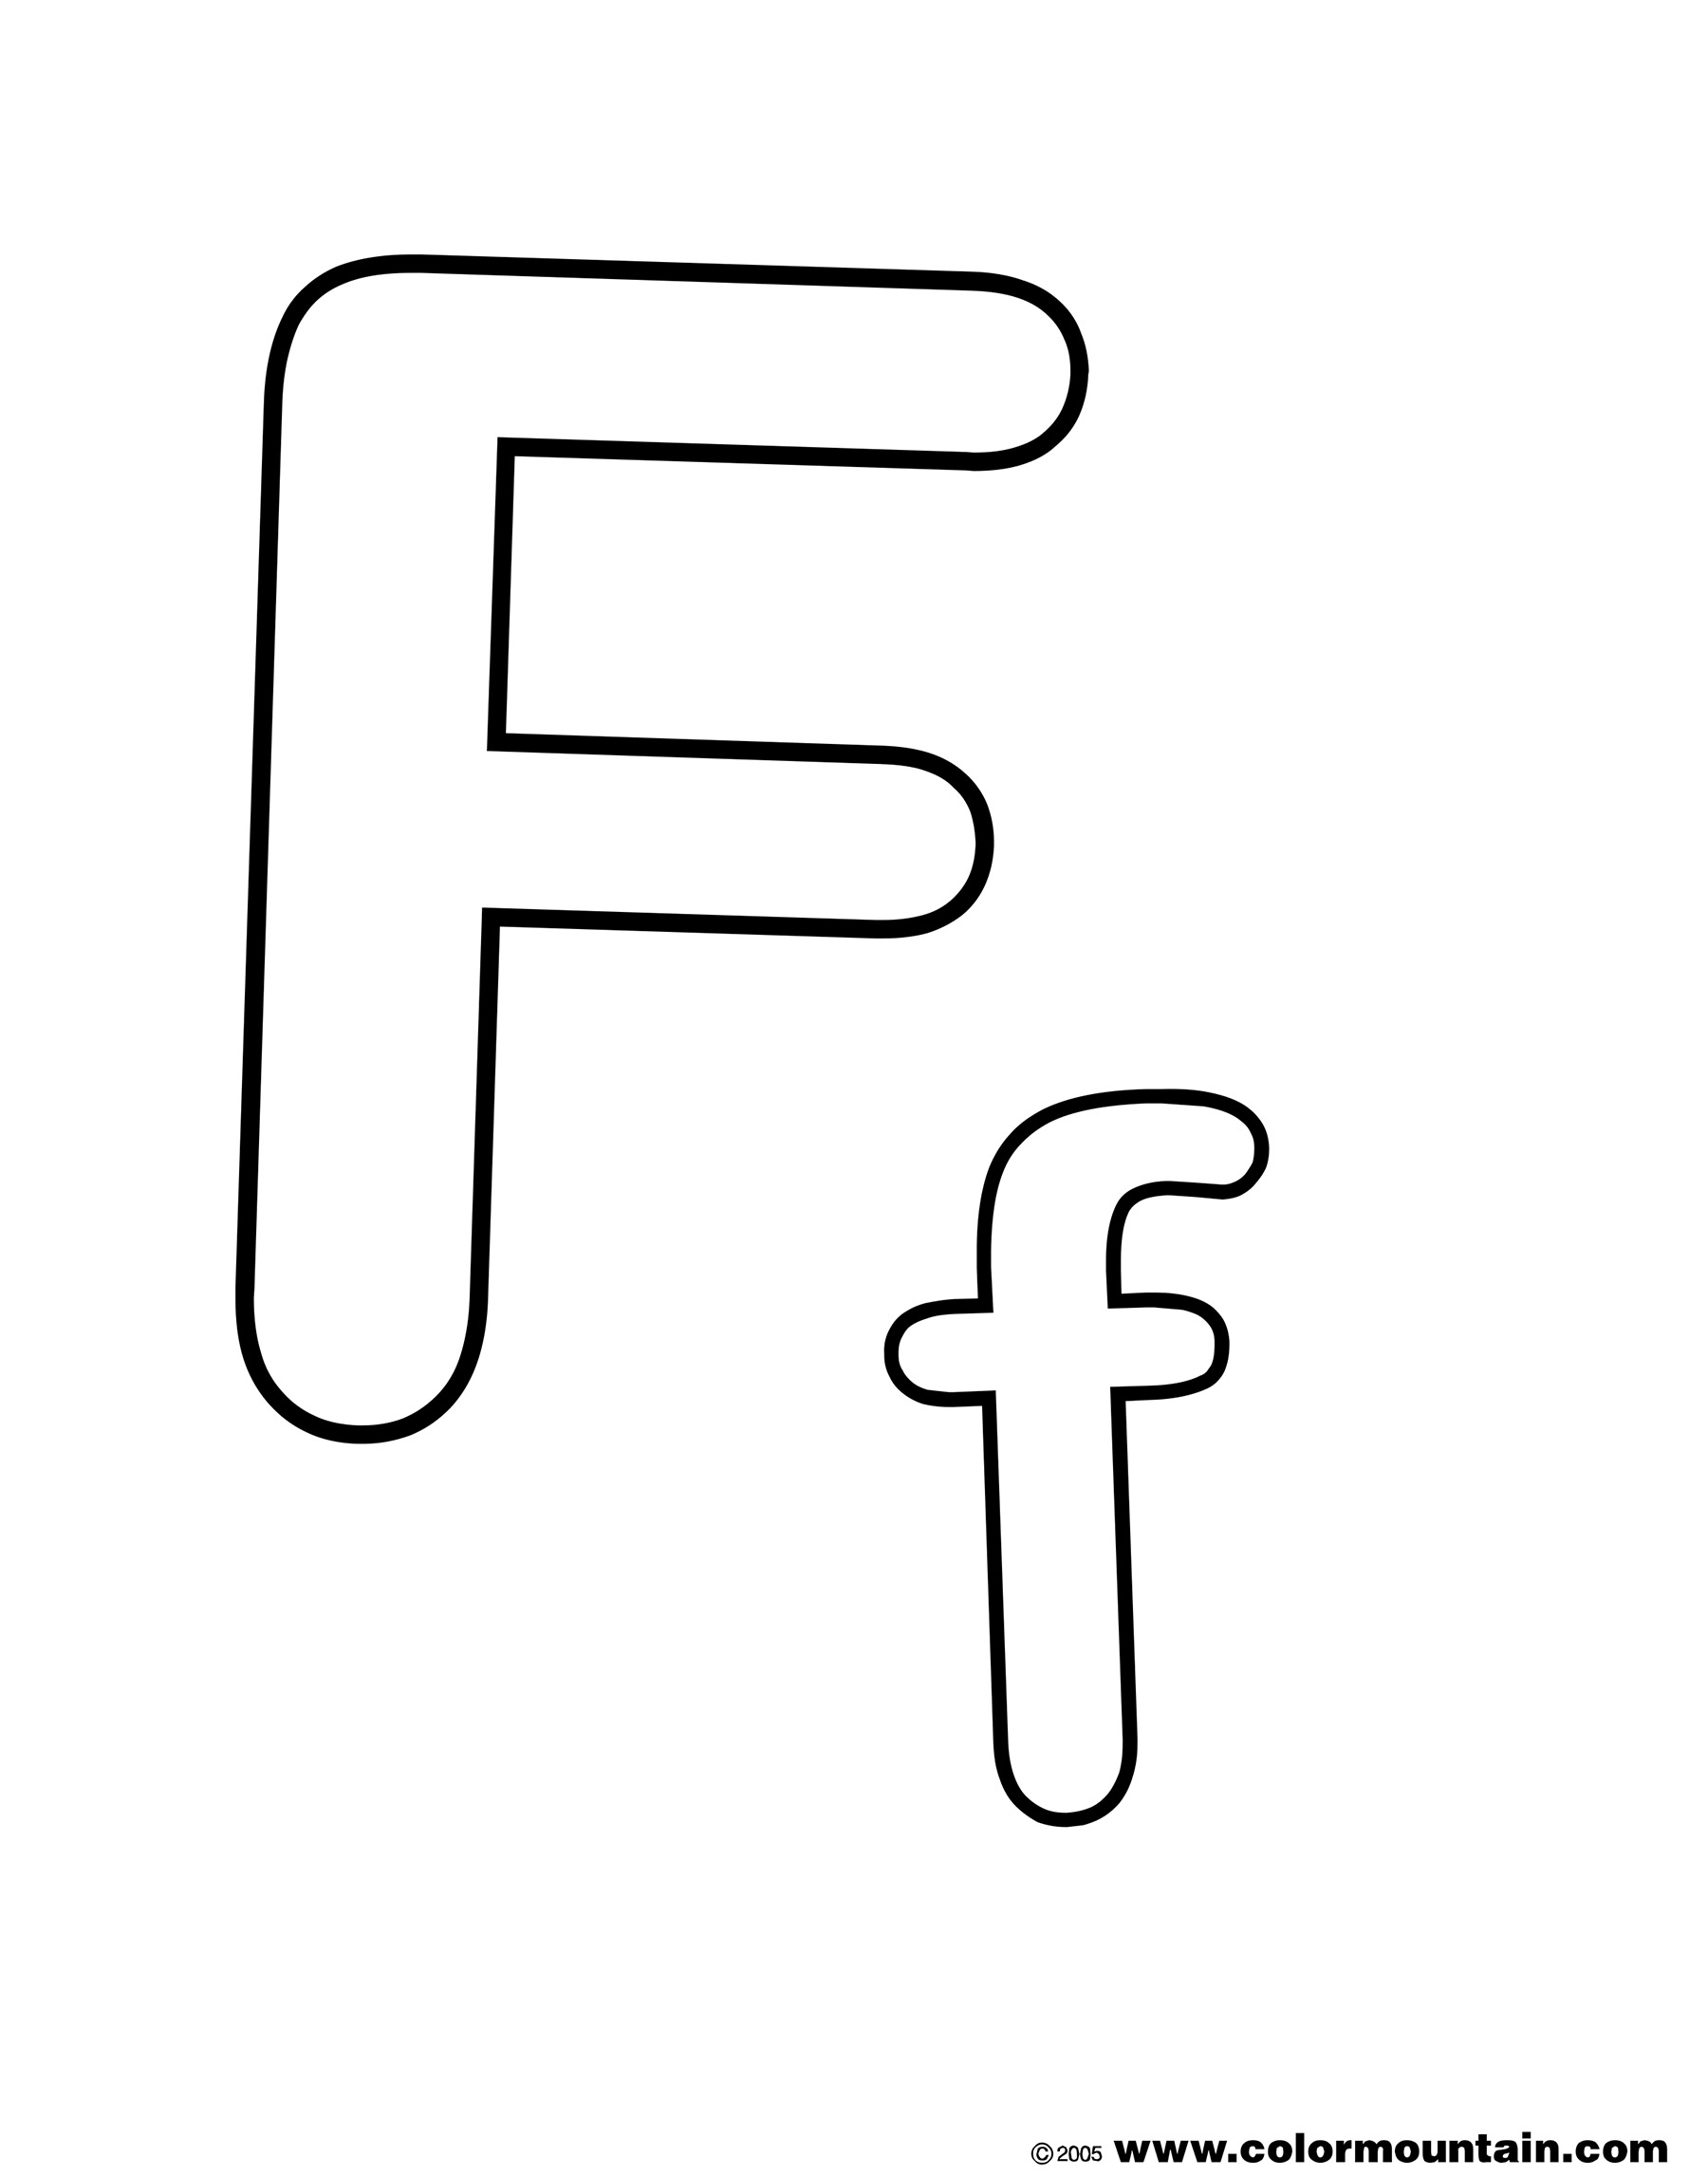 letter f coloring page - index id=62